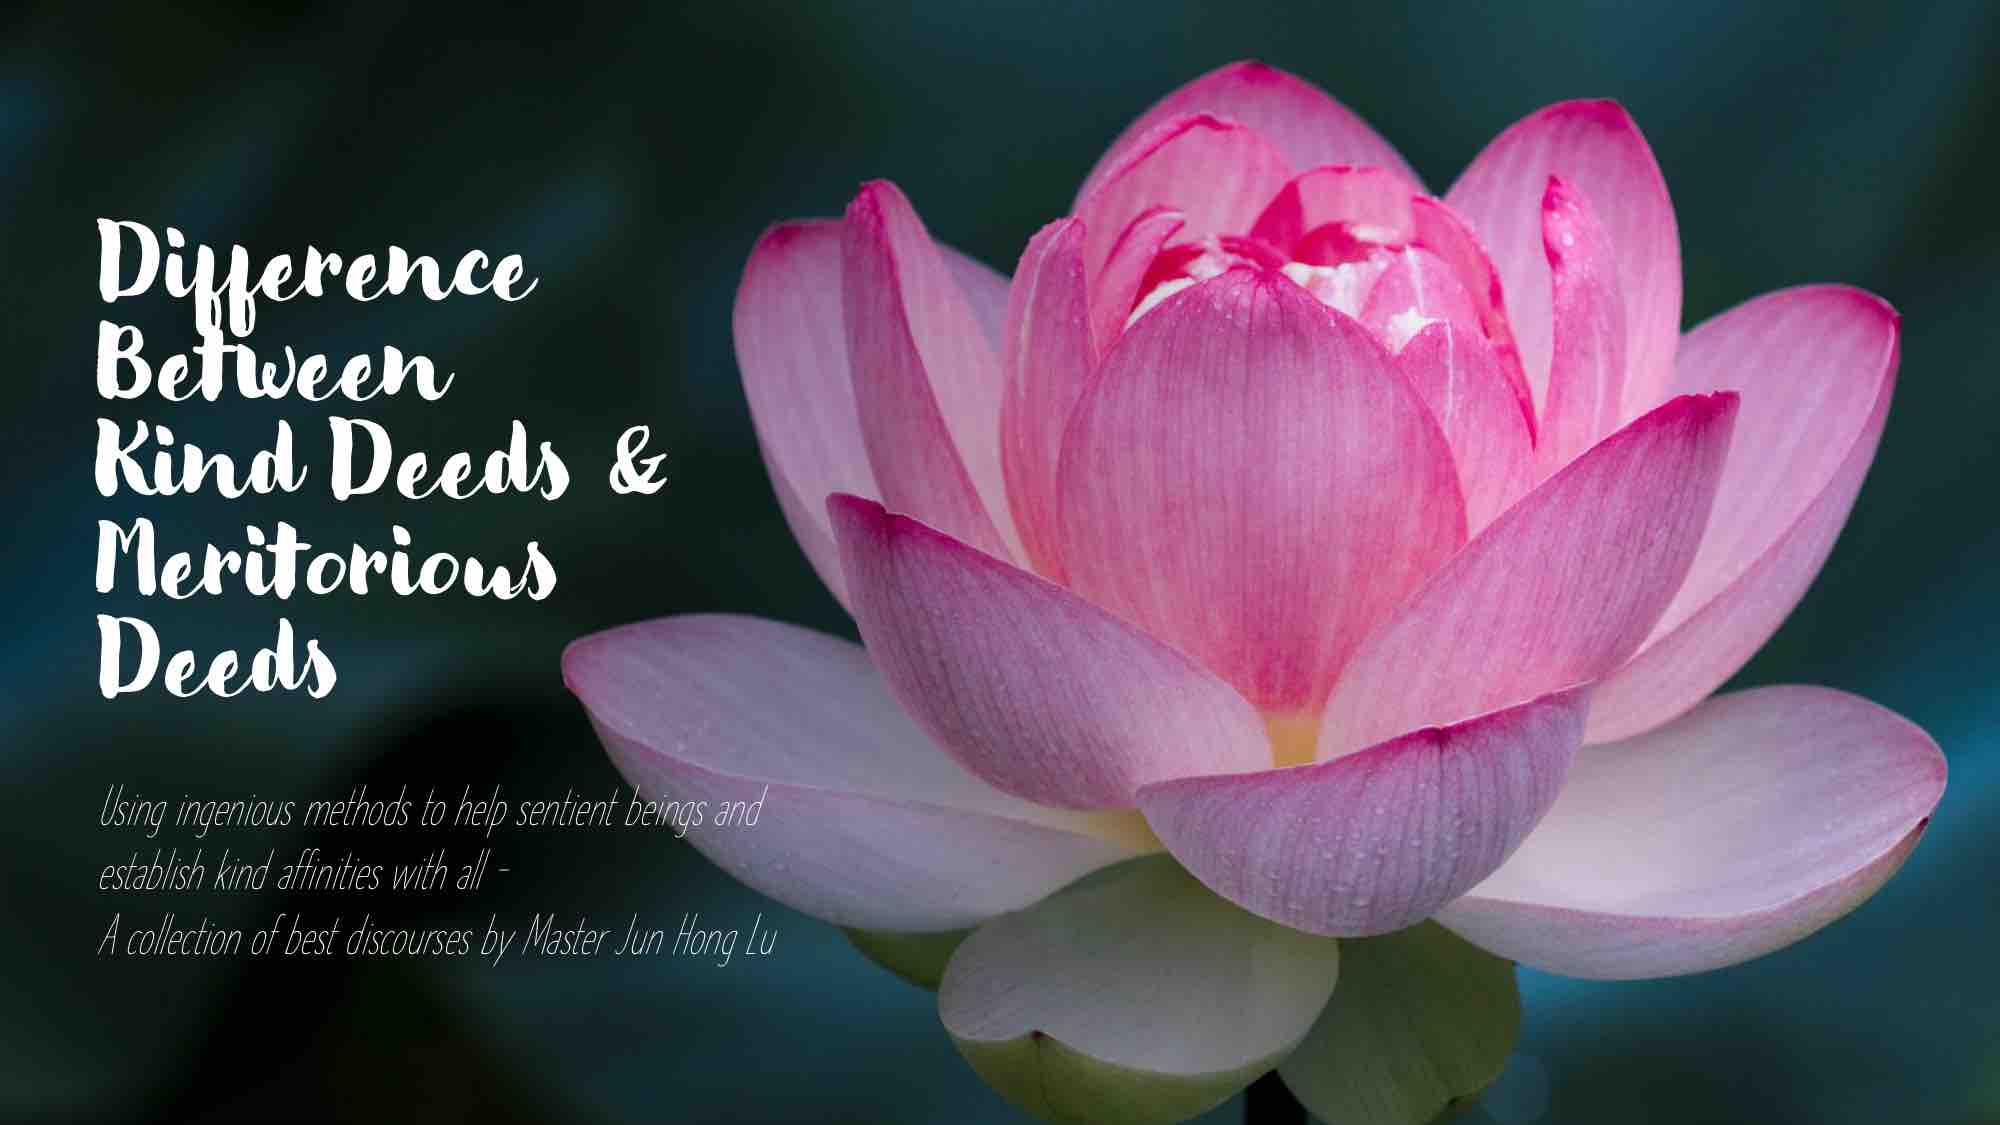 DIFFERENCE BETWEEN KIND DEEDS AND MERITORIOUS DEEDS | 新加坡心靈法門